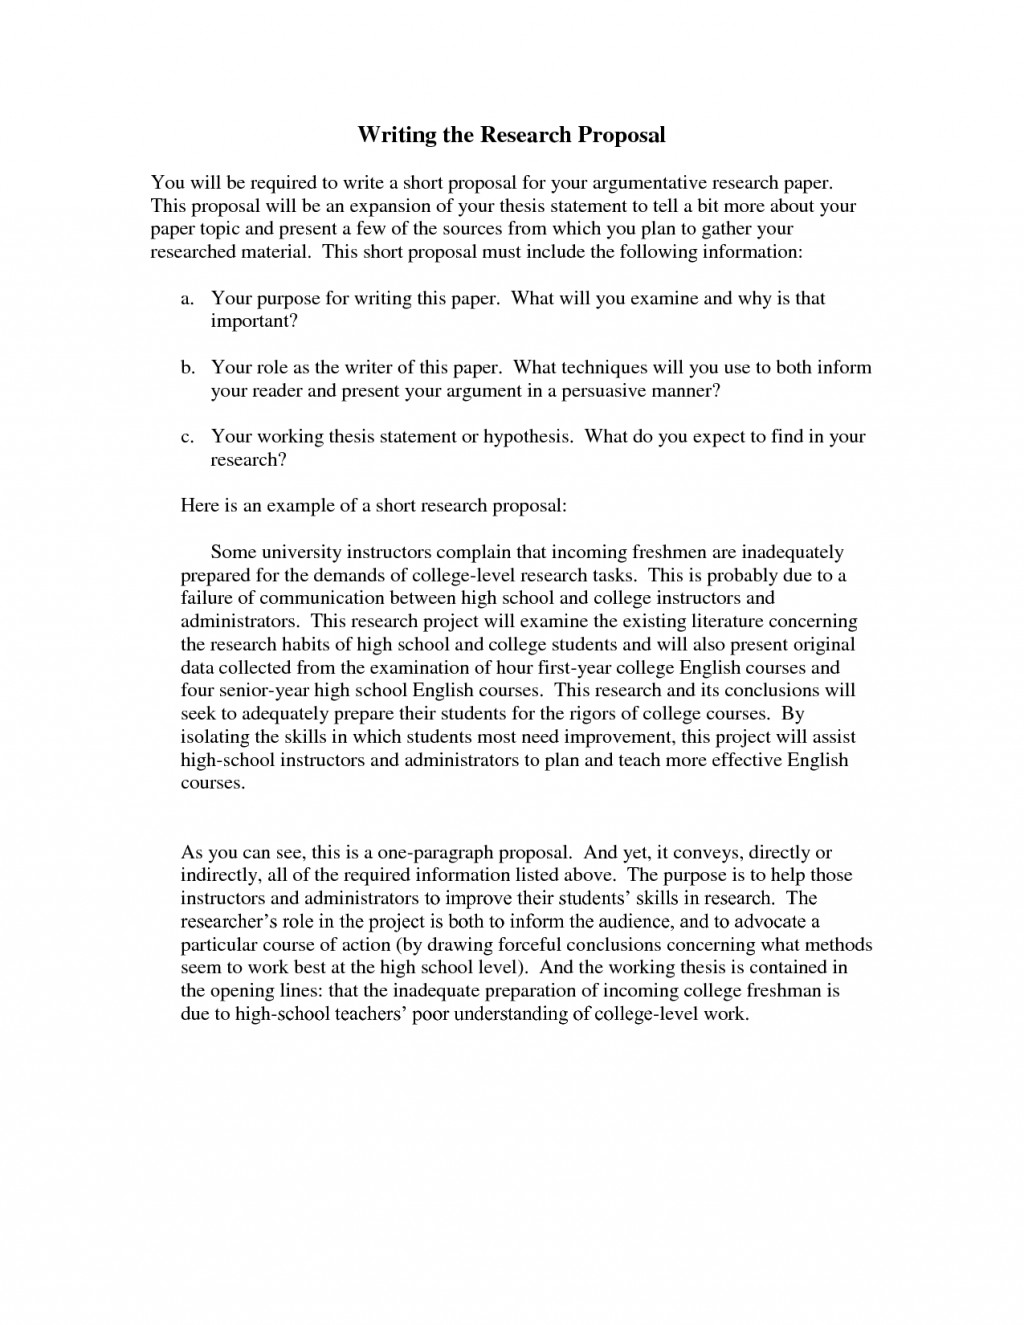 006 Research Paper How To Write Proposal Breathtaking A For Topic Example Large